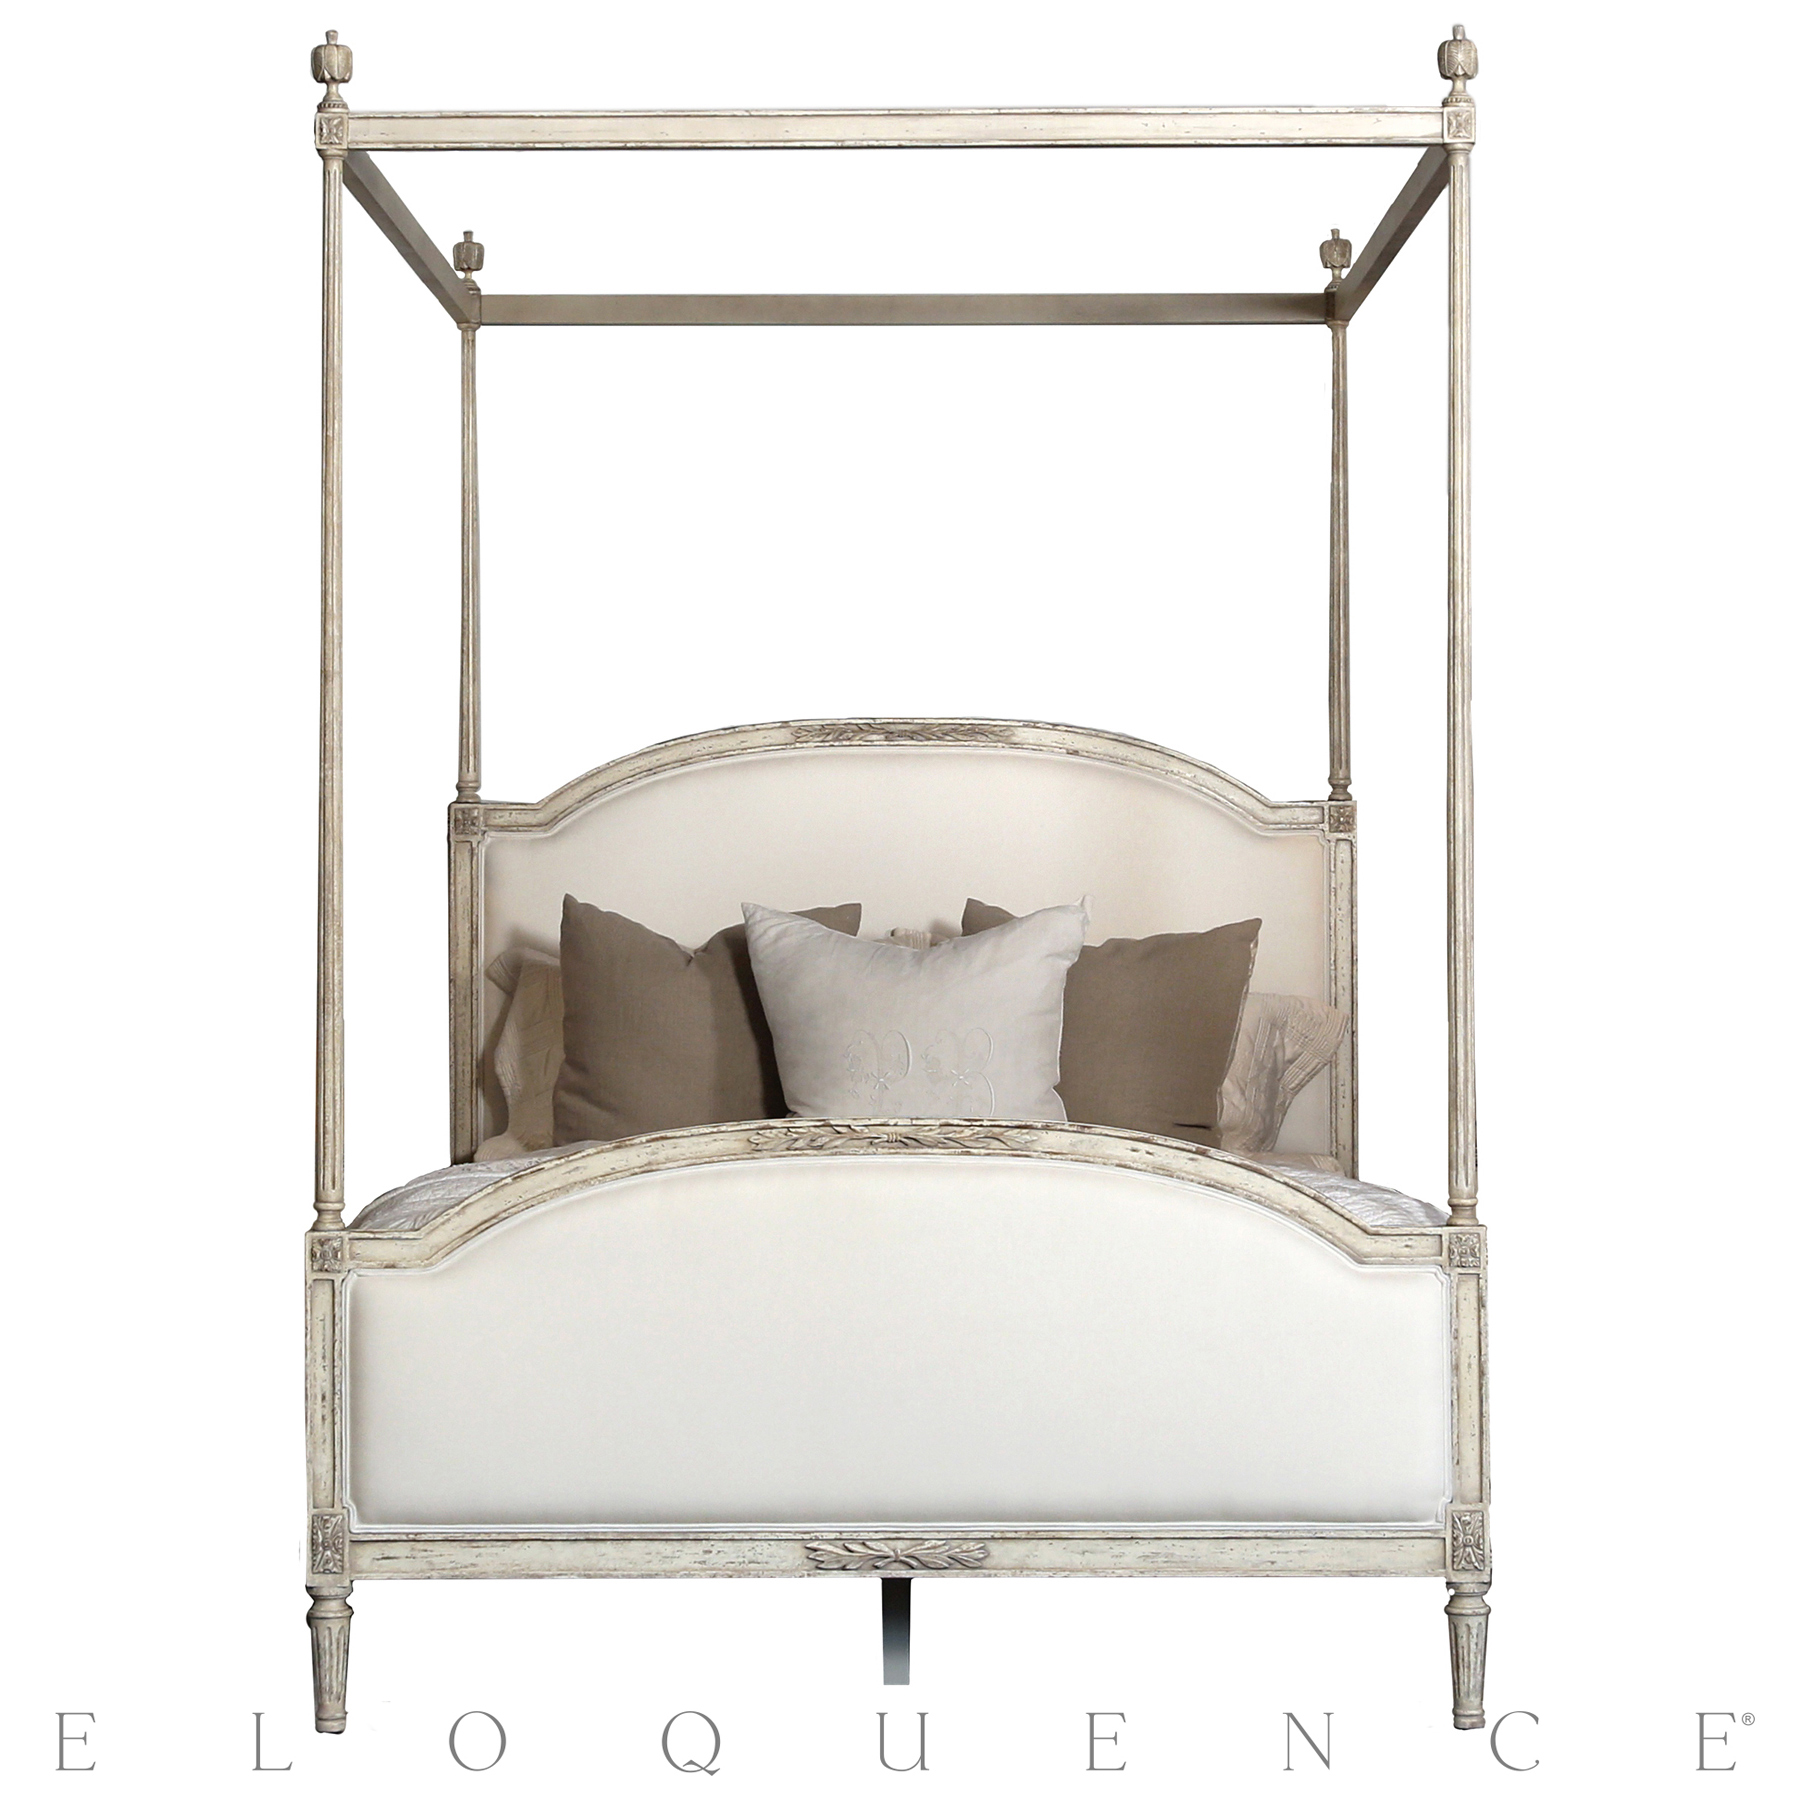 Eloquence® Dauphine King Canopy Bed in Weathered White